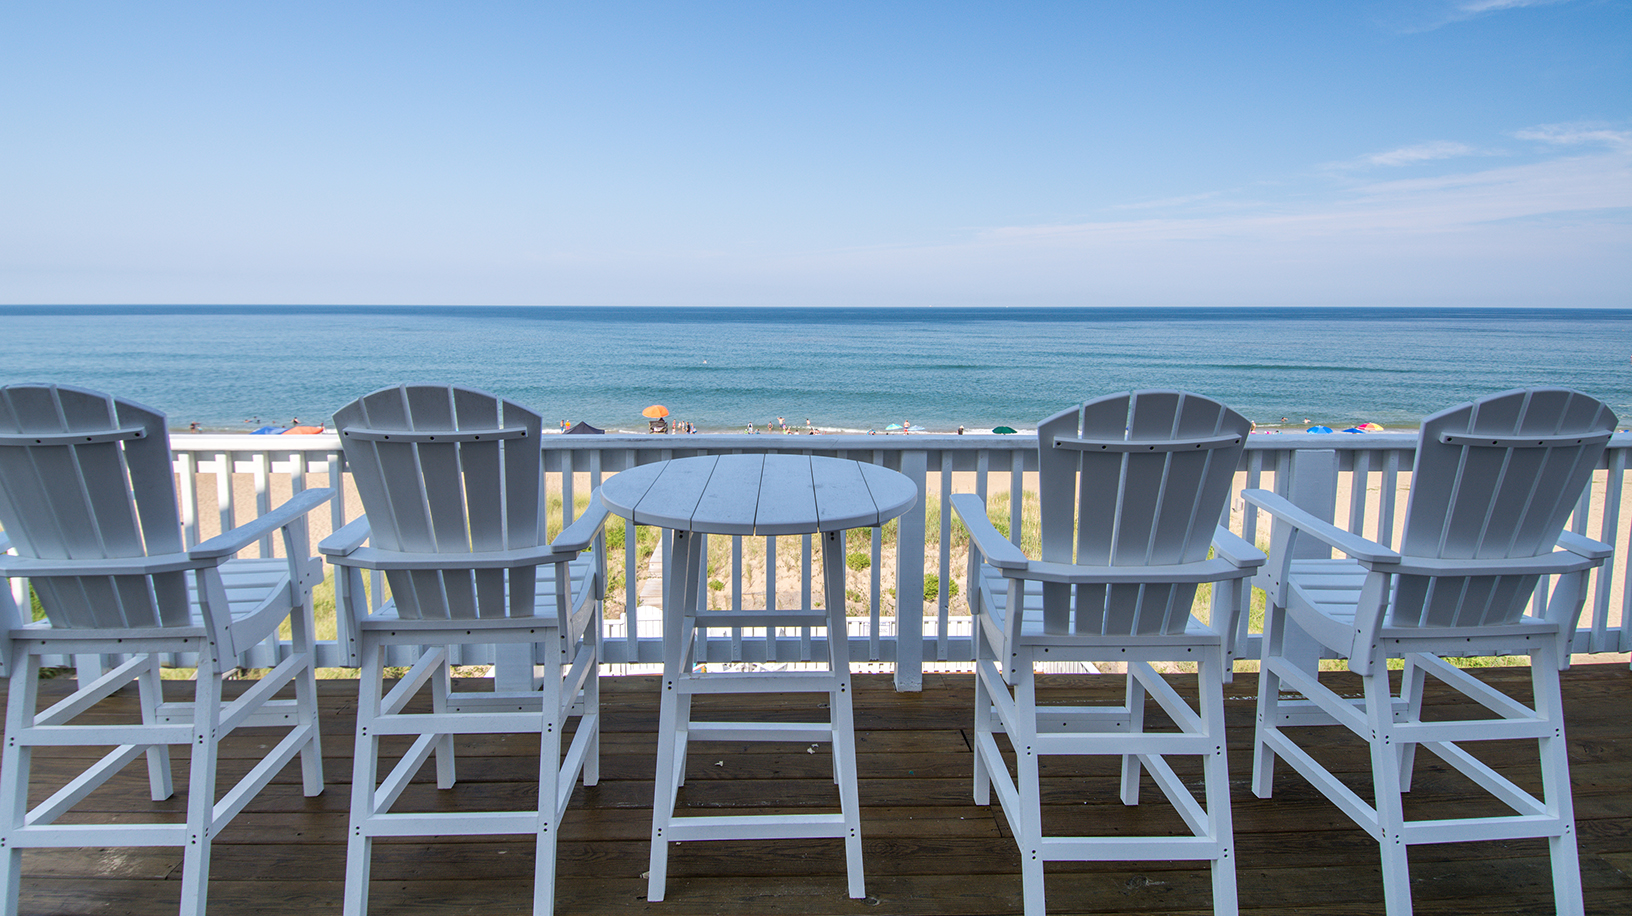 Vacation Rental vs. Hotel: Which is Right for Your Next Trip?